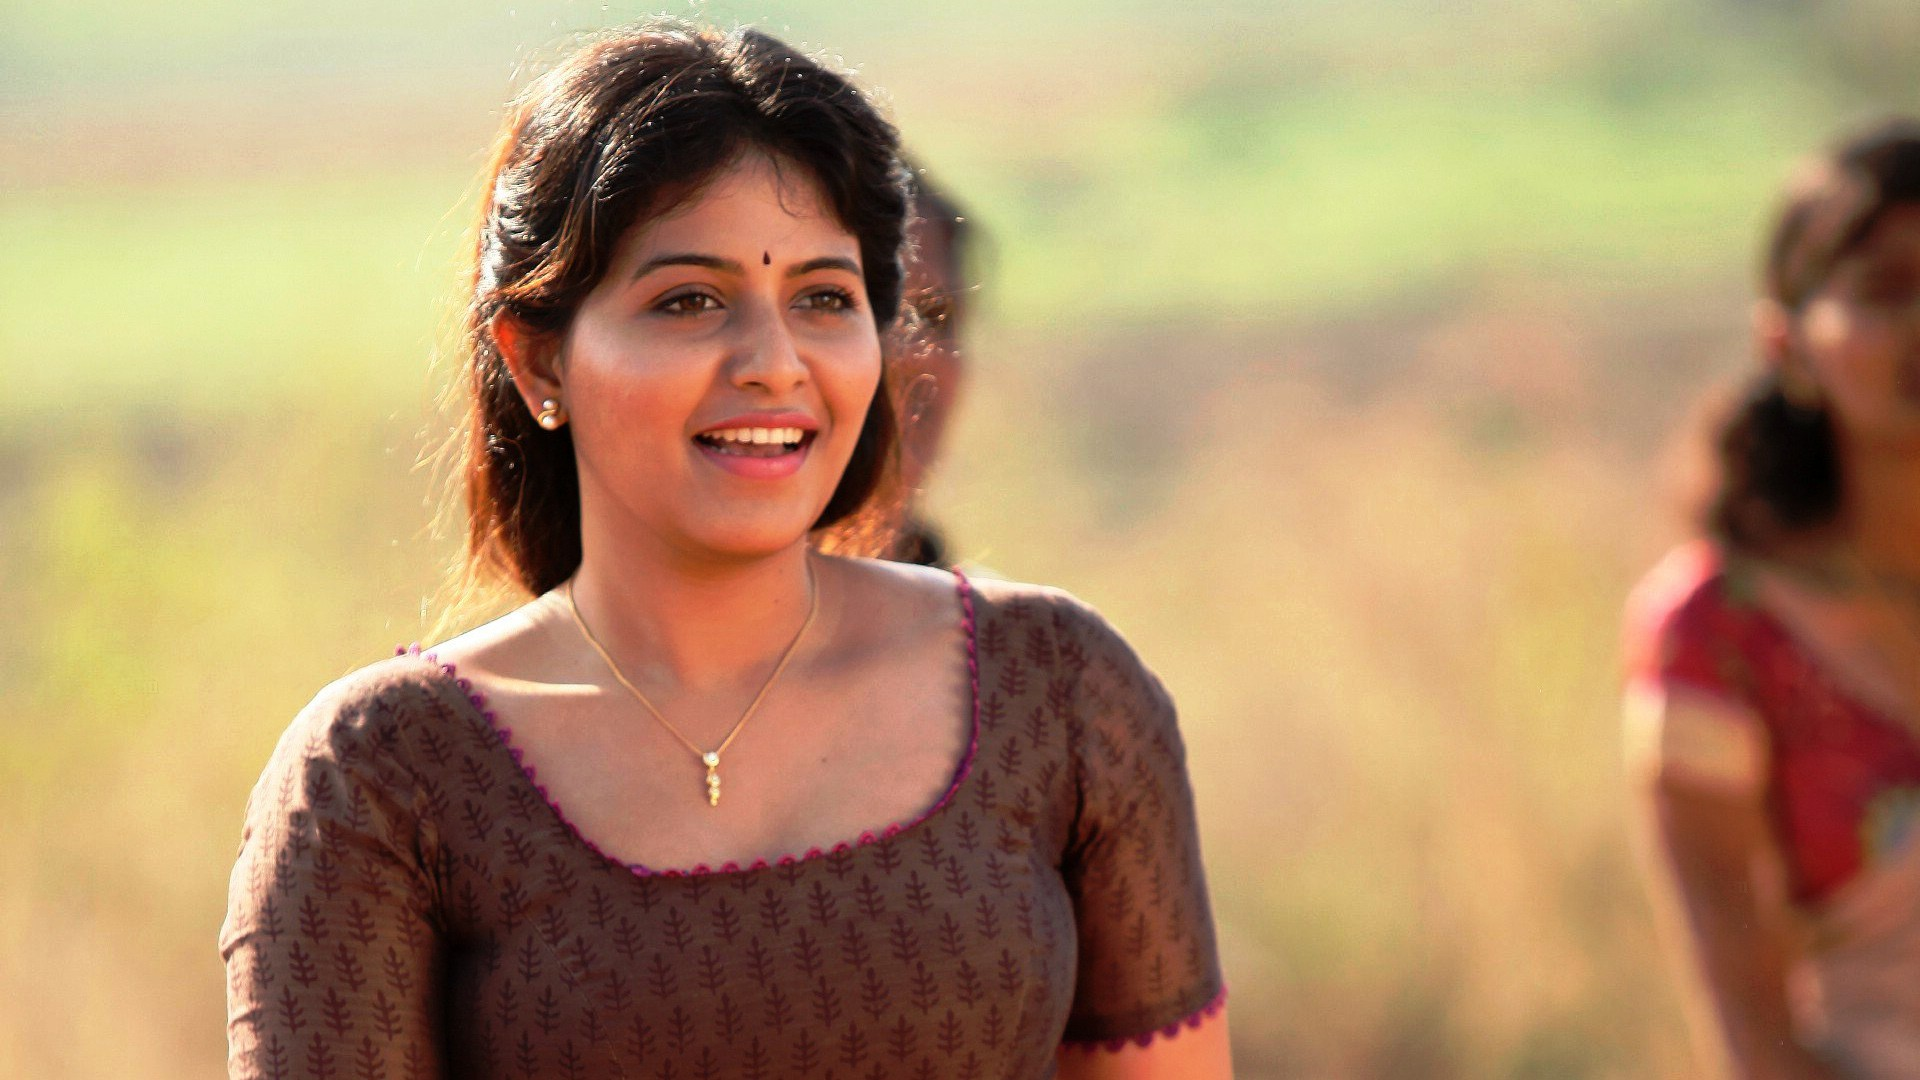 anjali wallpaper background